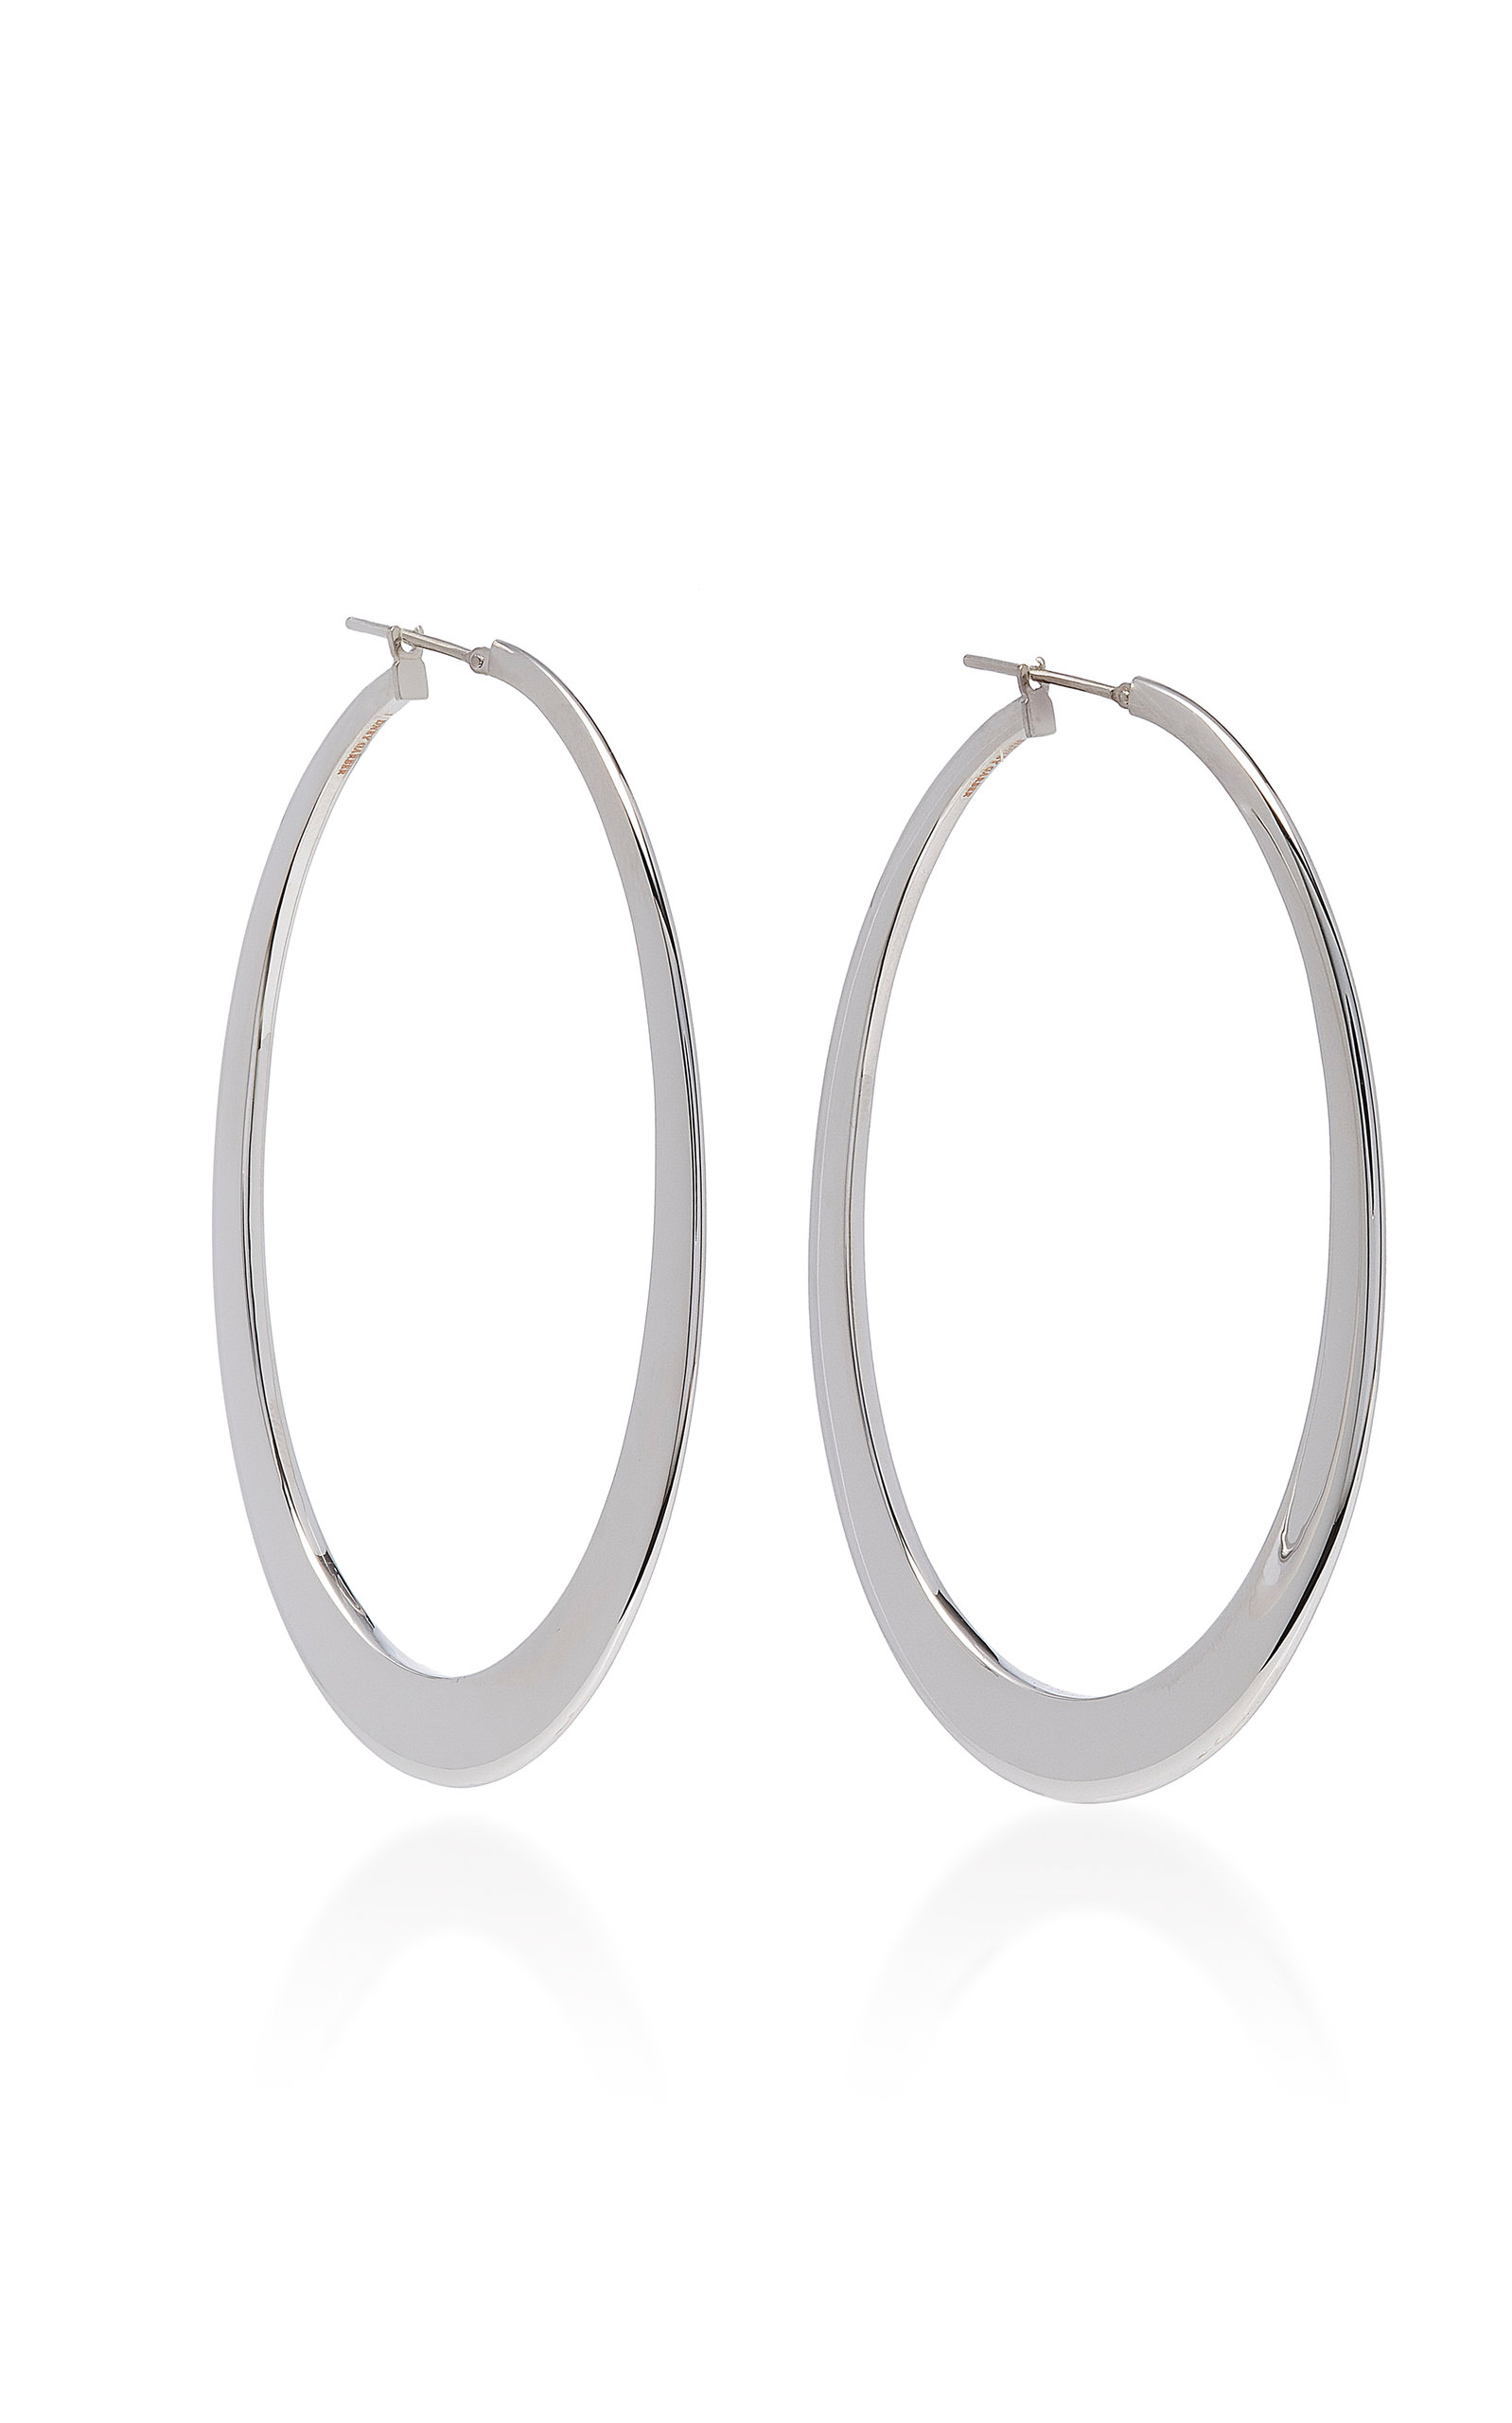 glistening silver earrings handpicked oval